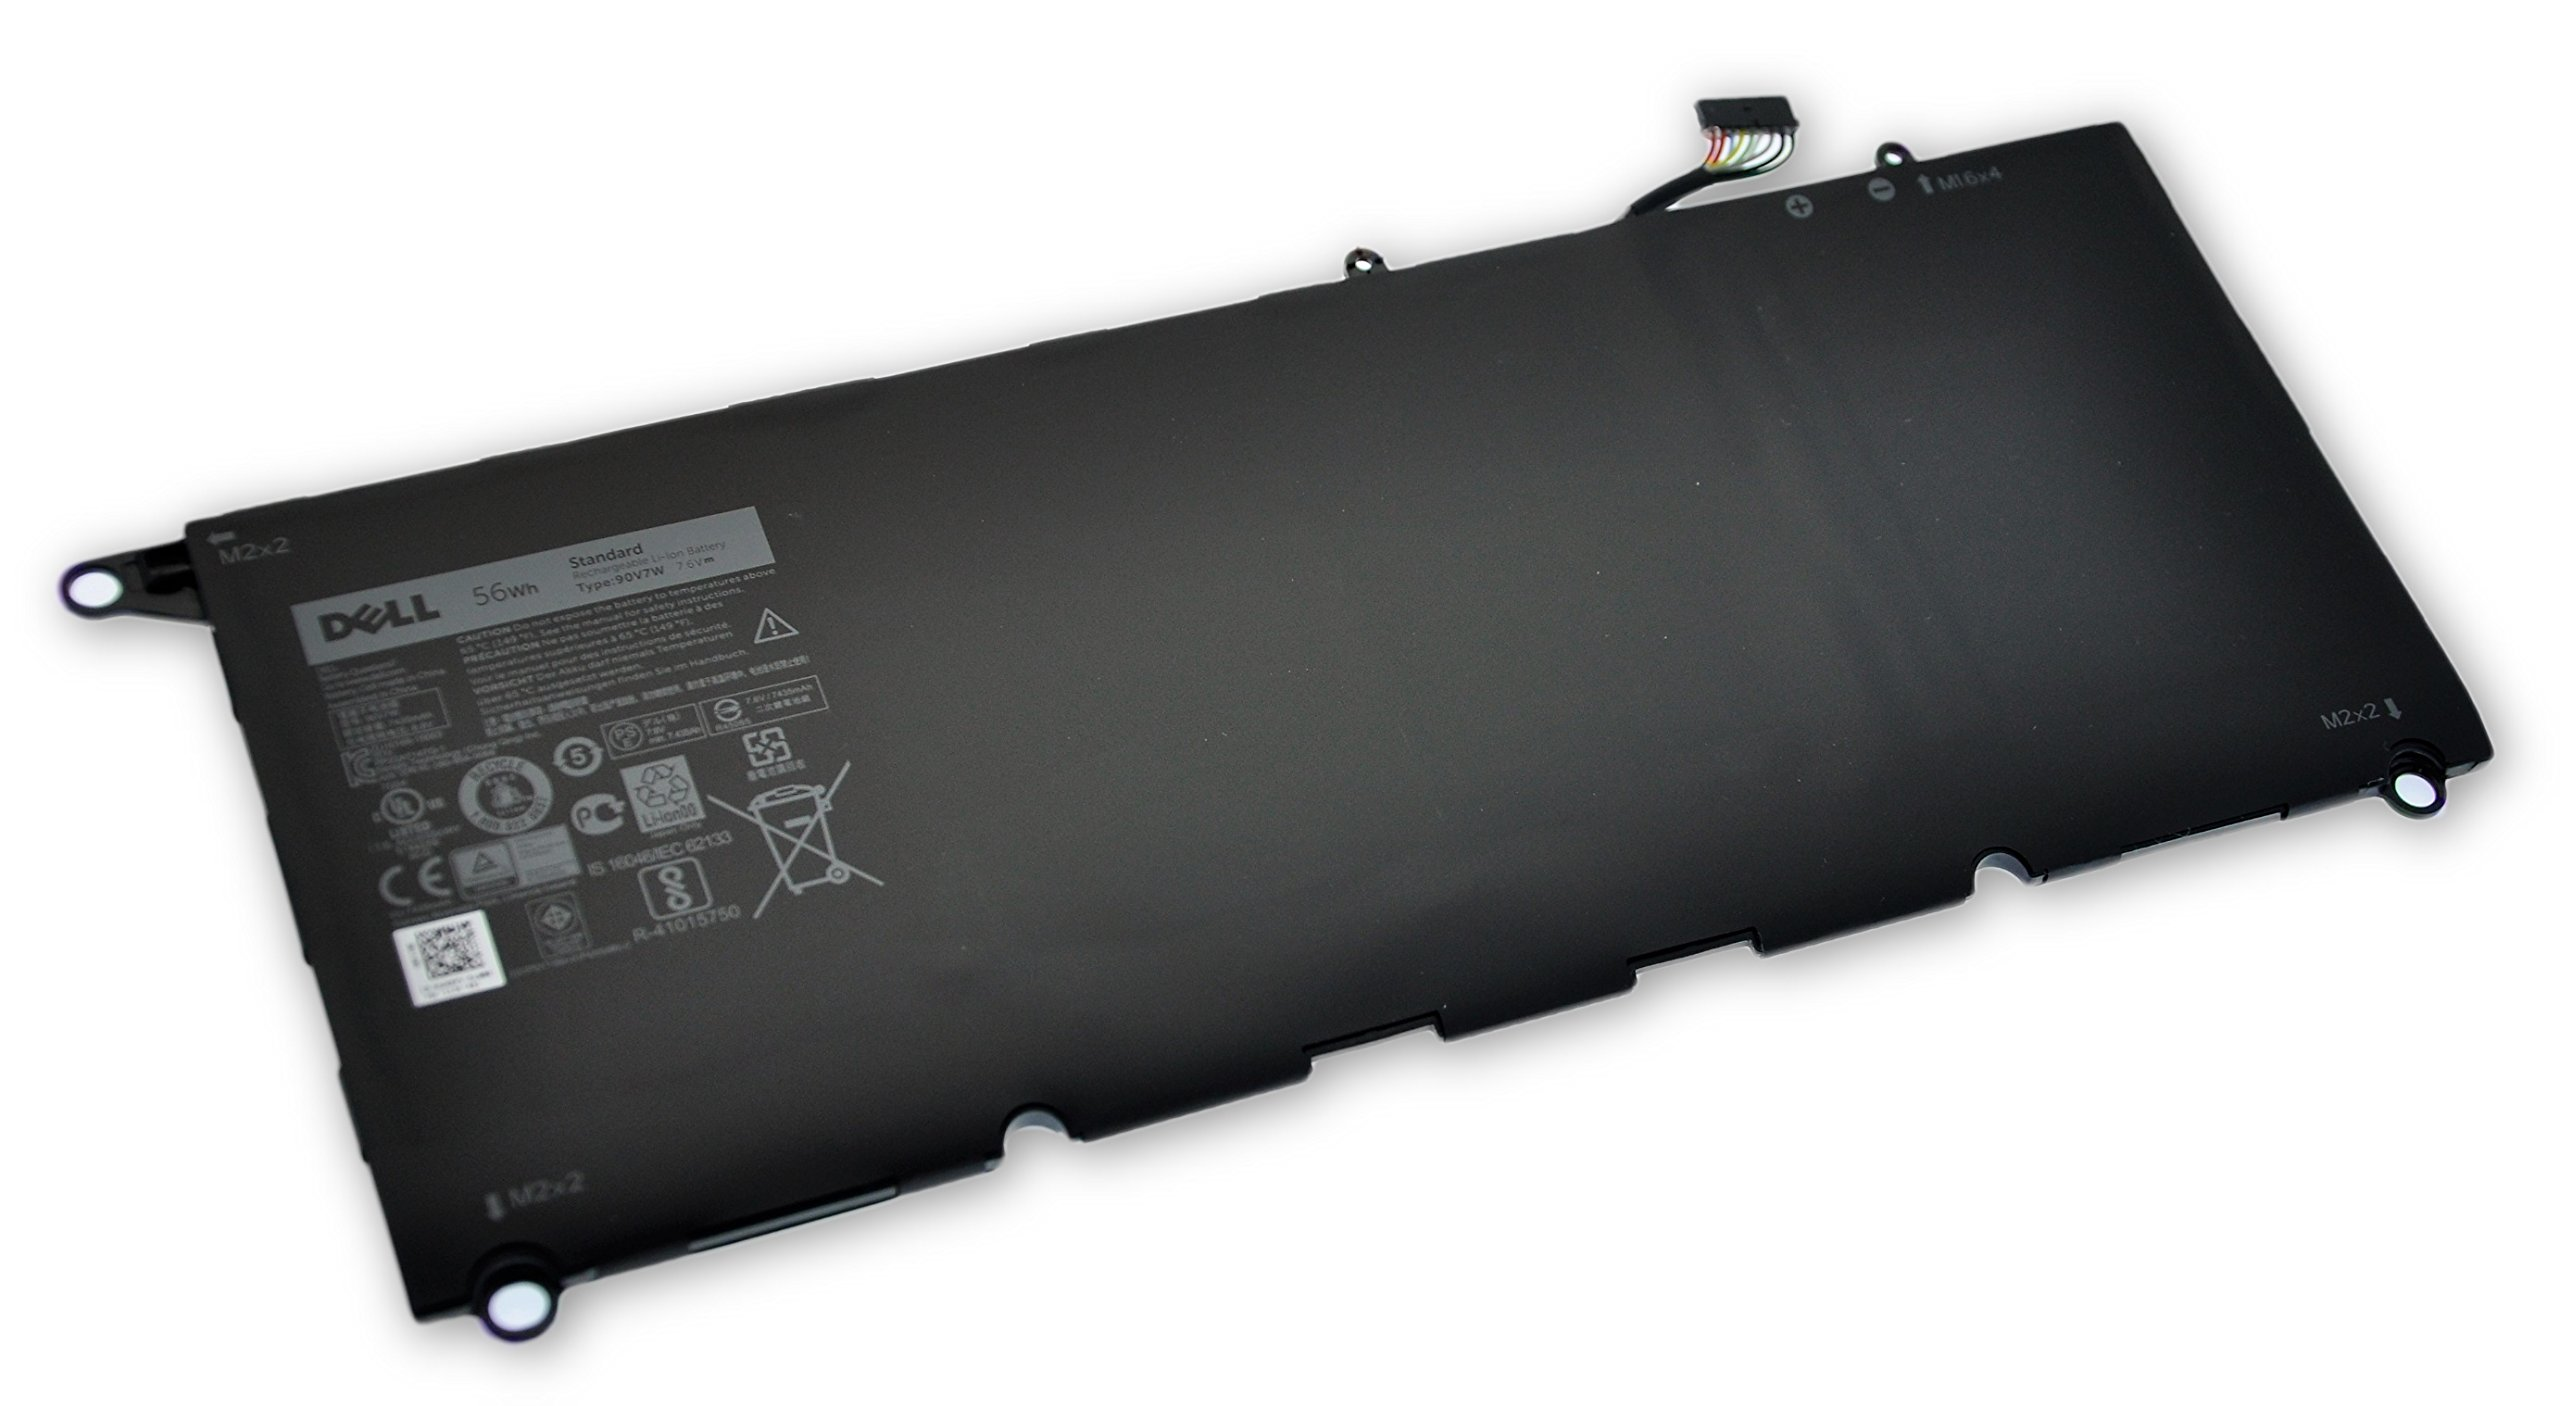 NEW ORIGINAL DELL XPS 13 9343 9350 56Wh Laptop Battery JHXPY 5K9CP 90V7W